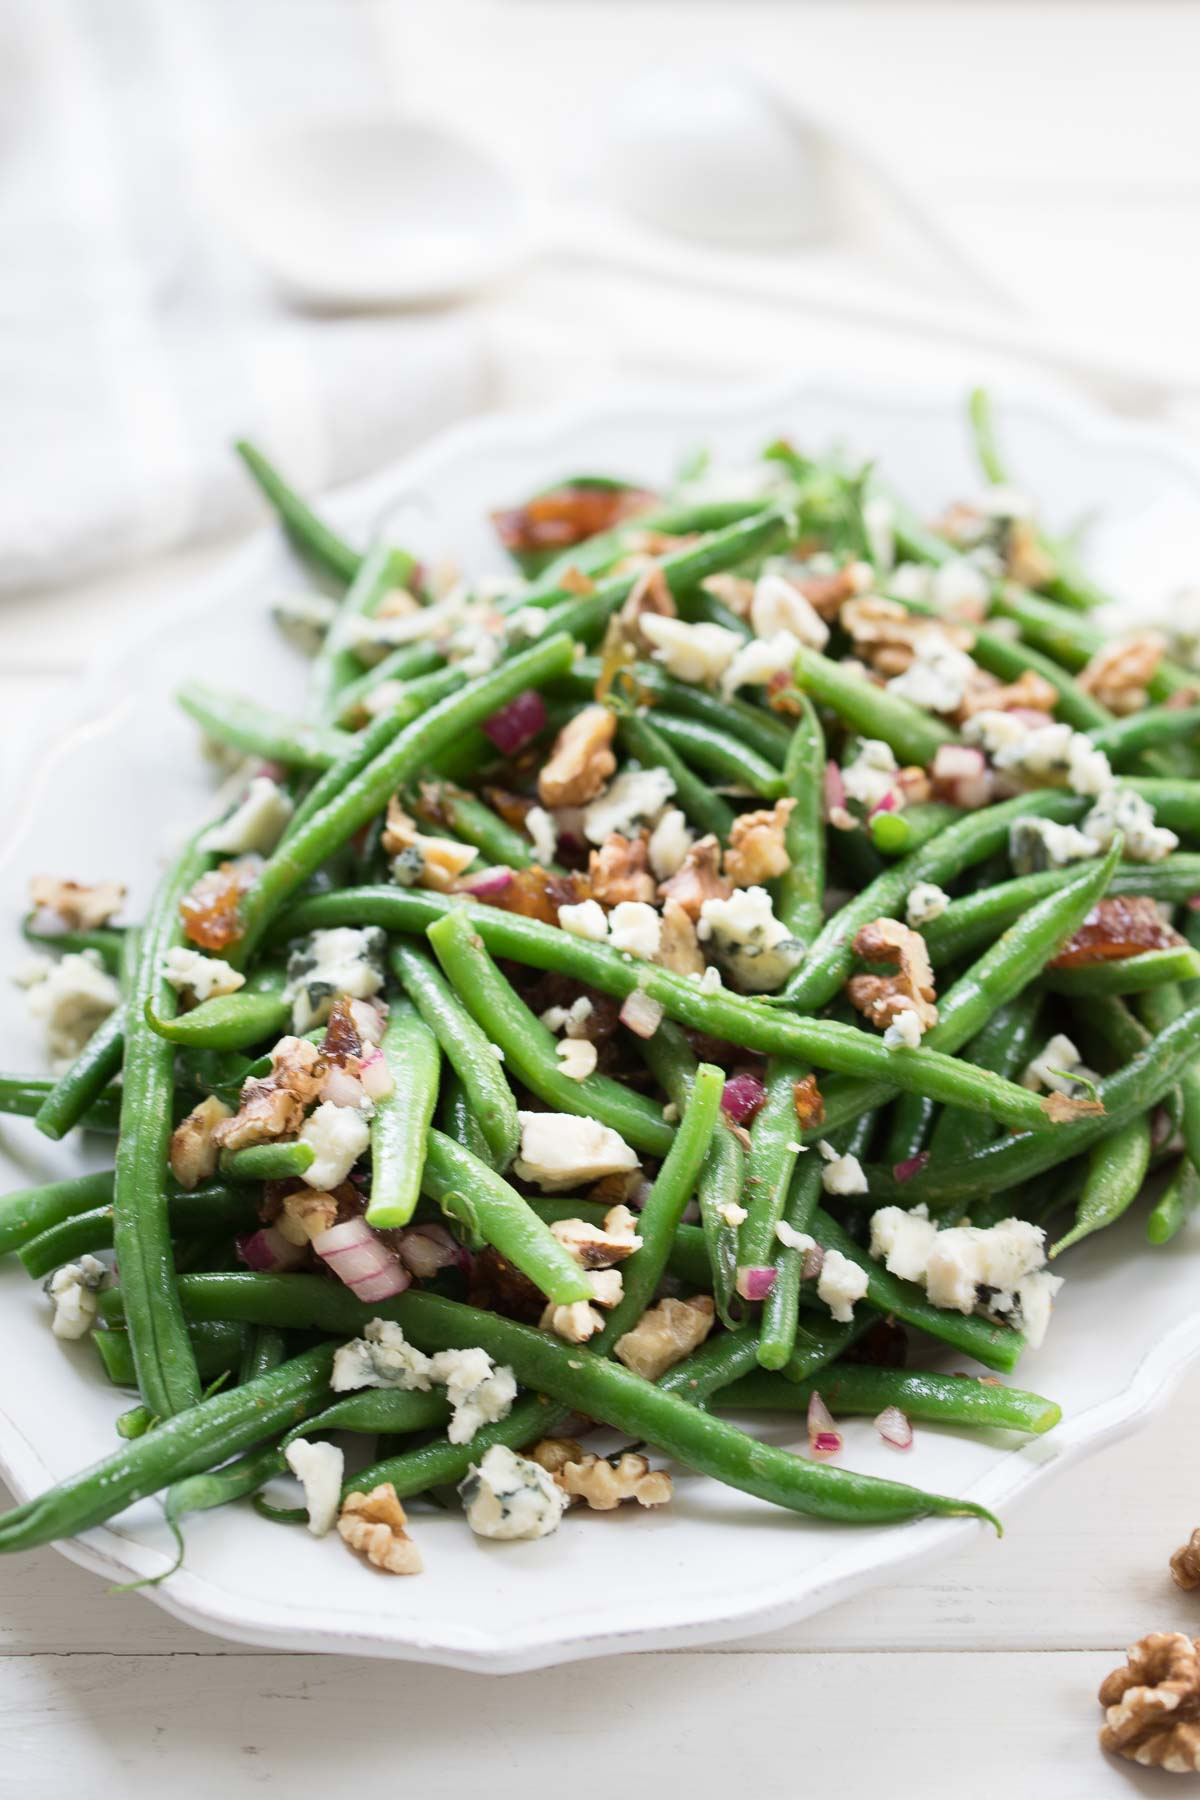 Green Bean Salad with Walnuts, Dates and Roquefort